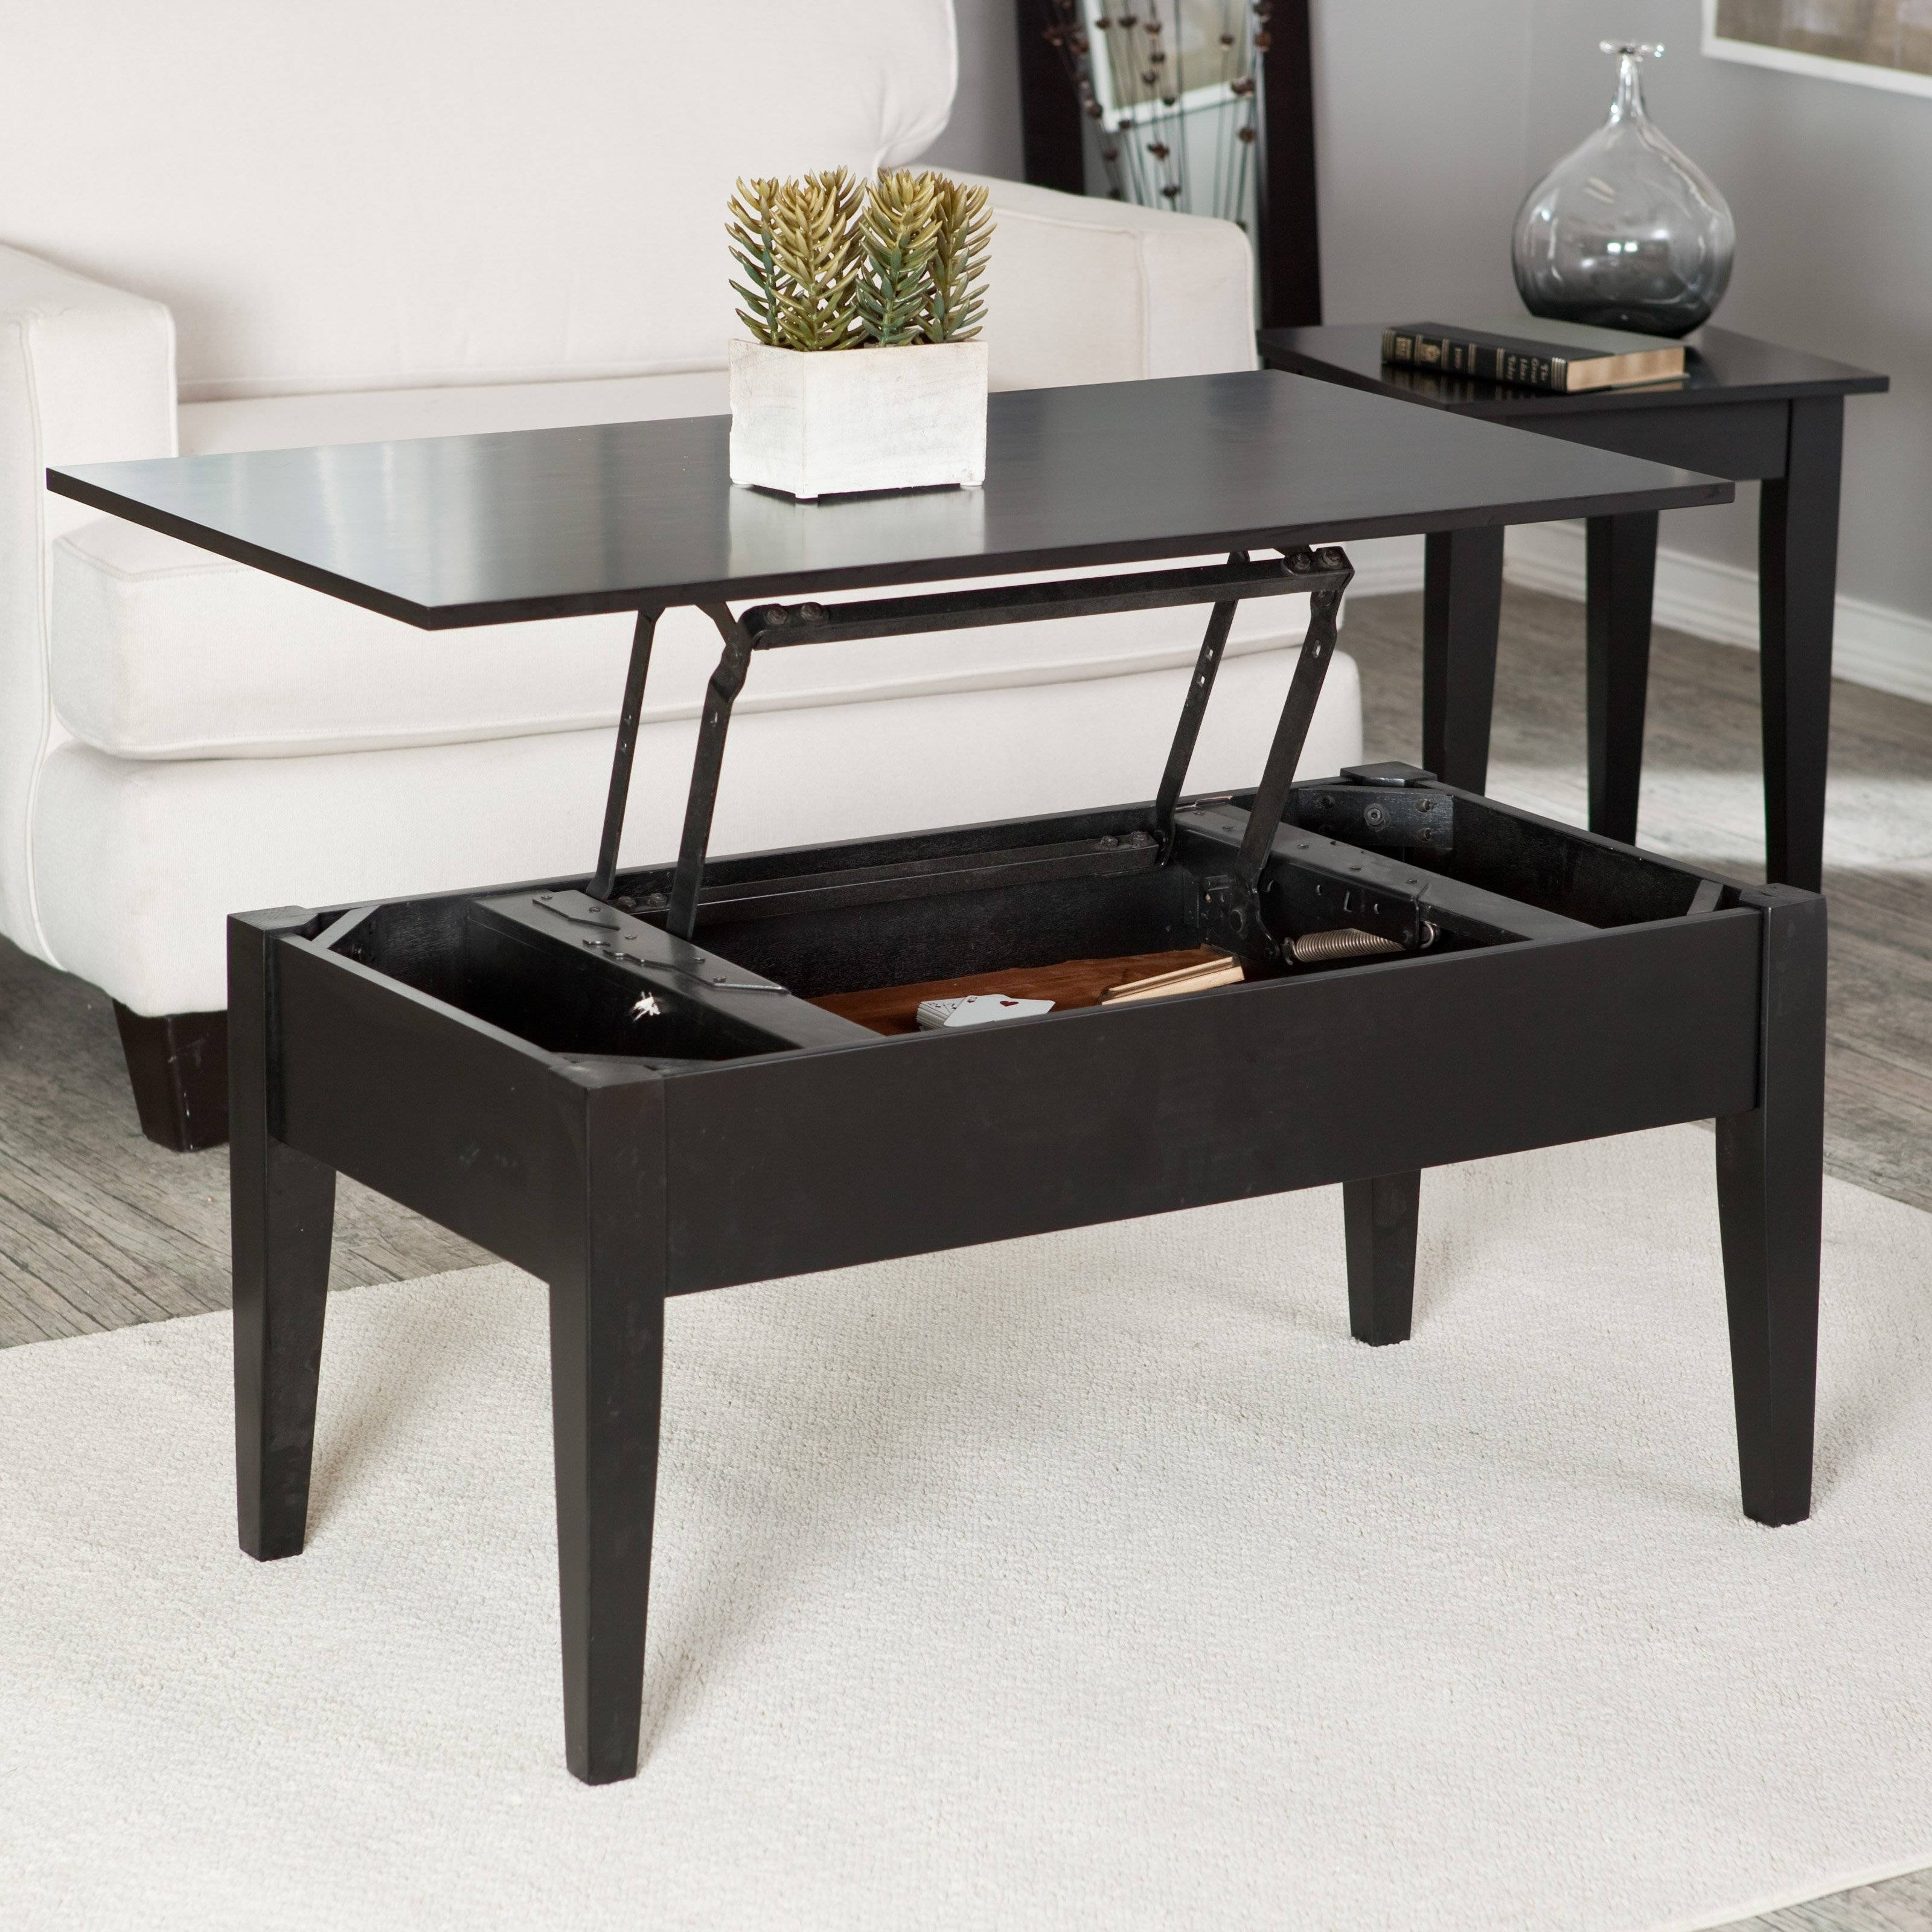 Turner Lift Top Coffee Table - Espresso | Hayneedle throughout Flip Top Coffee Tables (Image 26 of 30)